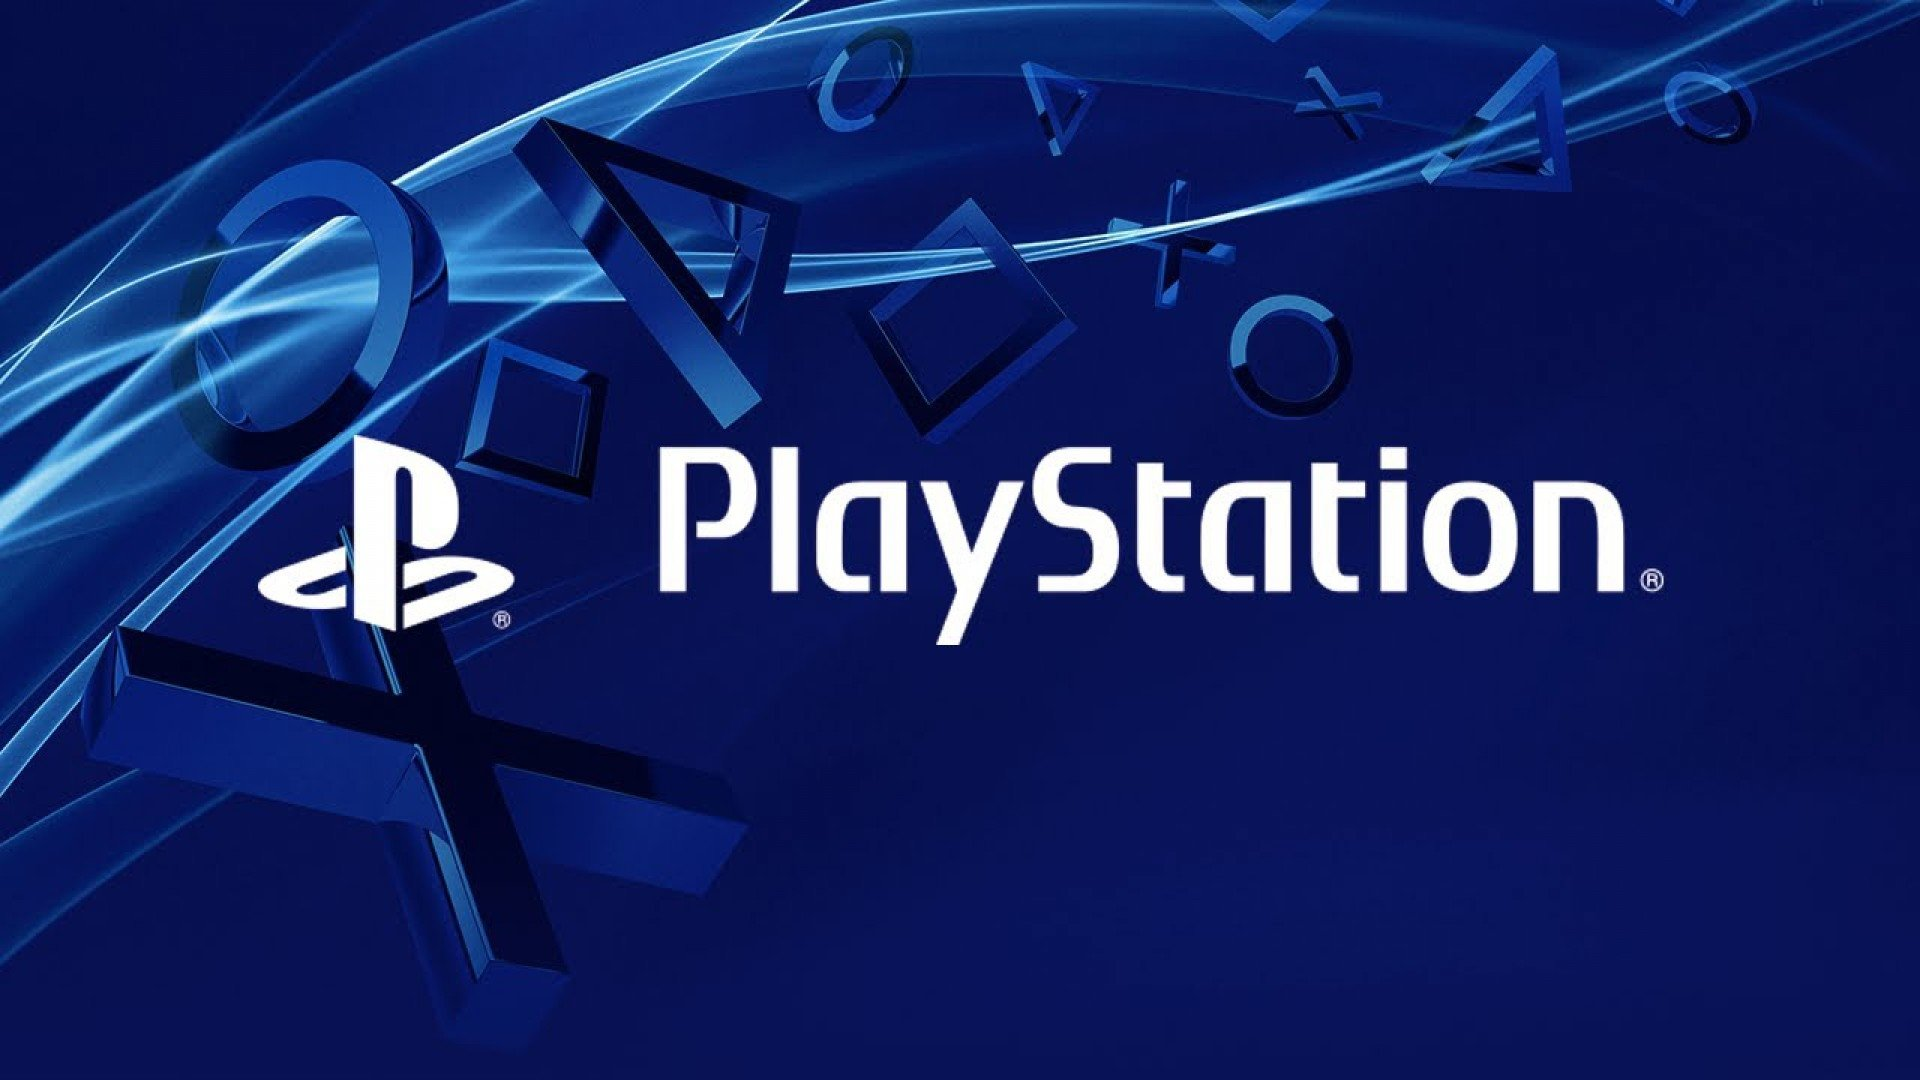 24 Playstation HD Wallpapers Background Images 1920x1080